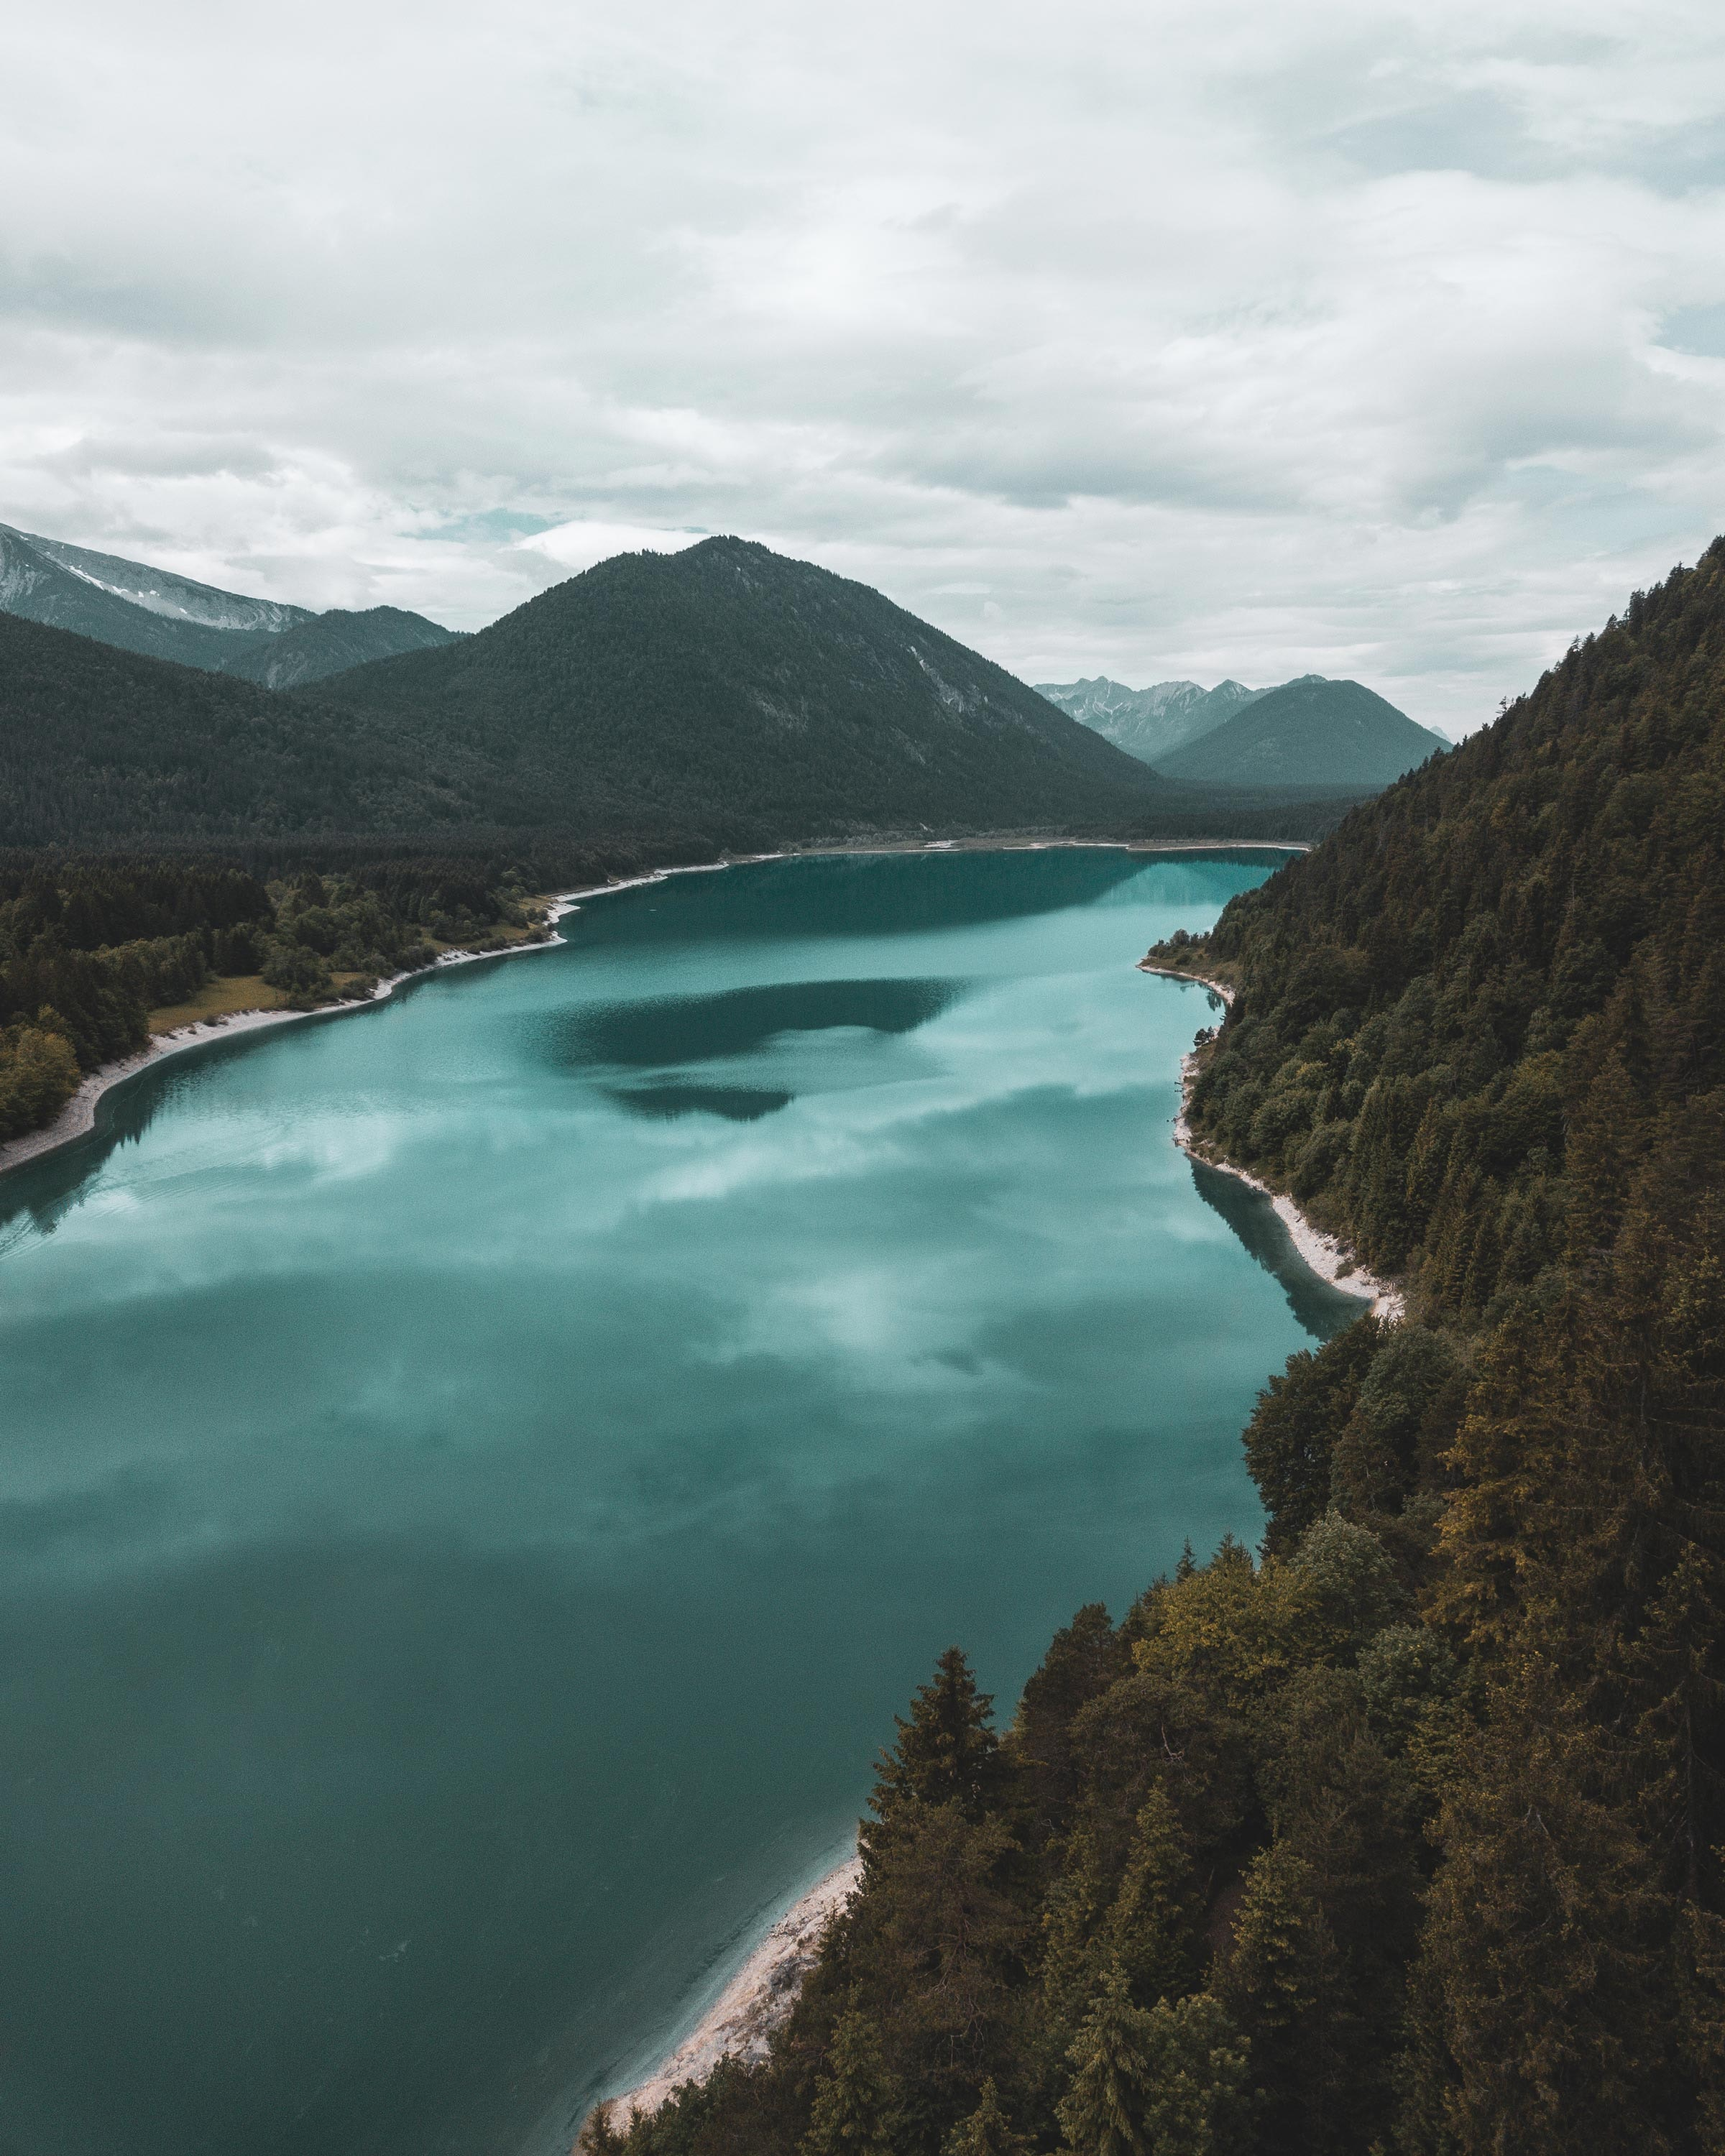 86822 free wallpaper 1440x2560 for phone, download images Landscape, Nature, Trees, Mountains, View From Above, Lake 1440x2560 for mobile